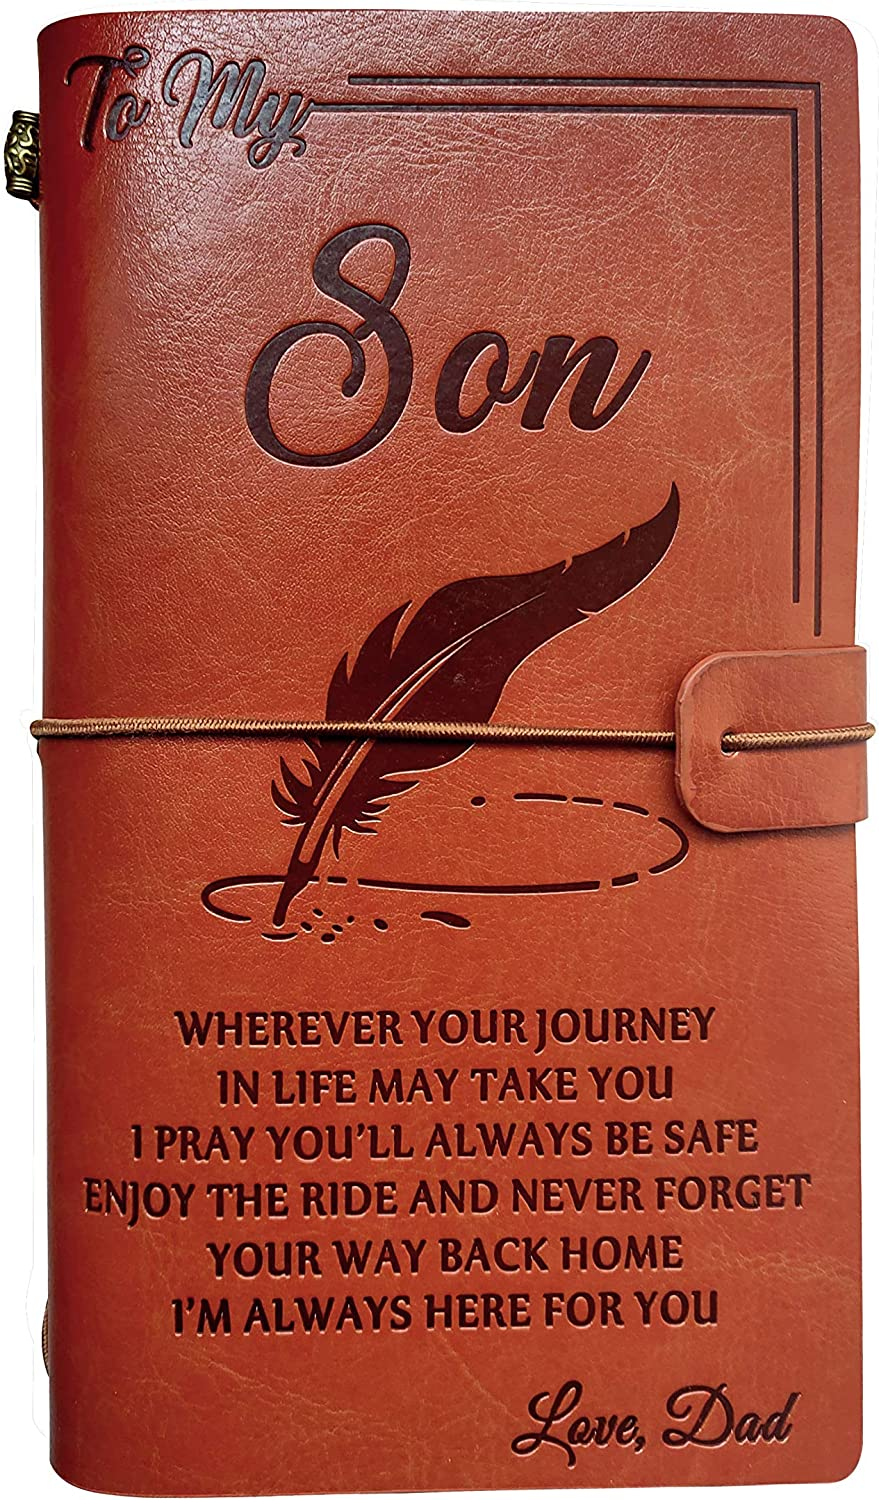 from Dad to My Son Leather Journal -I Pray You'll Always be Safe, Enjoy The Ride and Never Forget Your Way Back Home- 2 Refillable Notepads Writing Diary Gift for Boys(from Dad to Son)